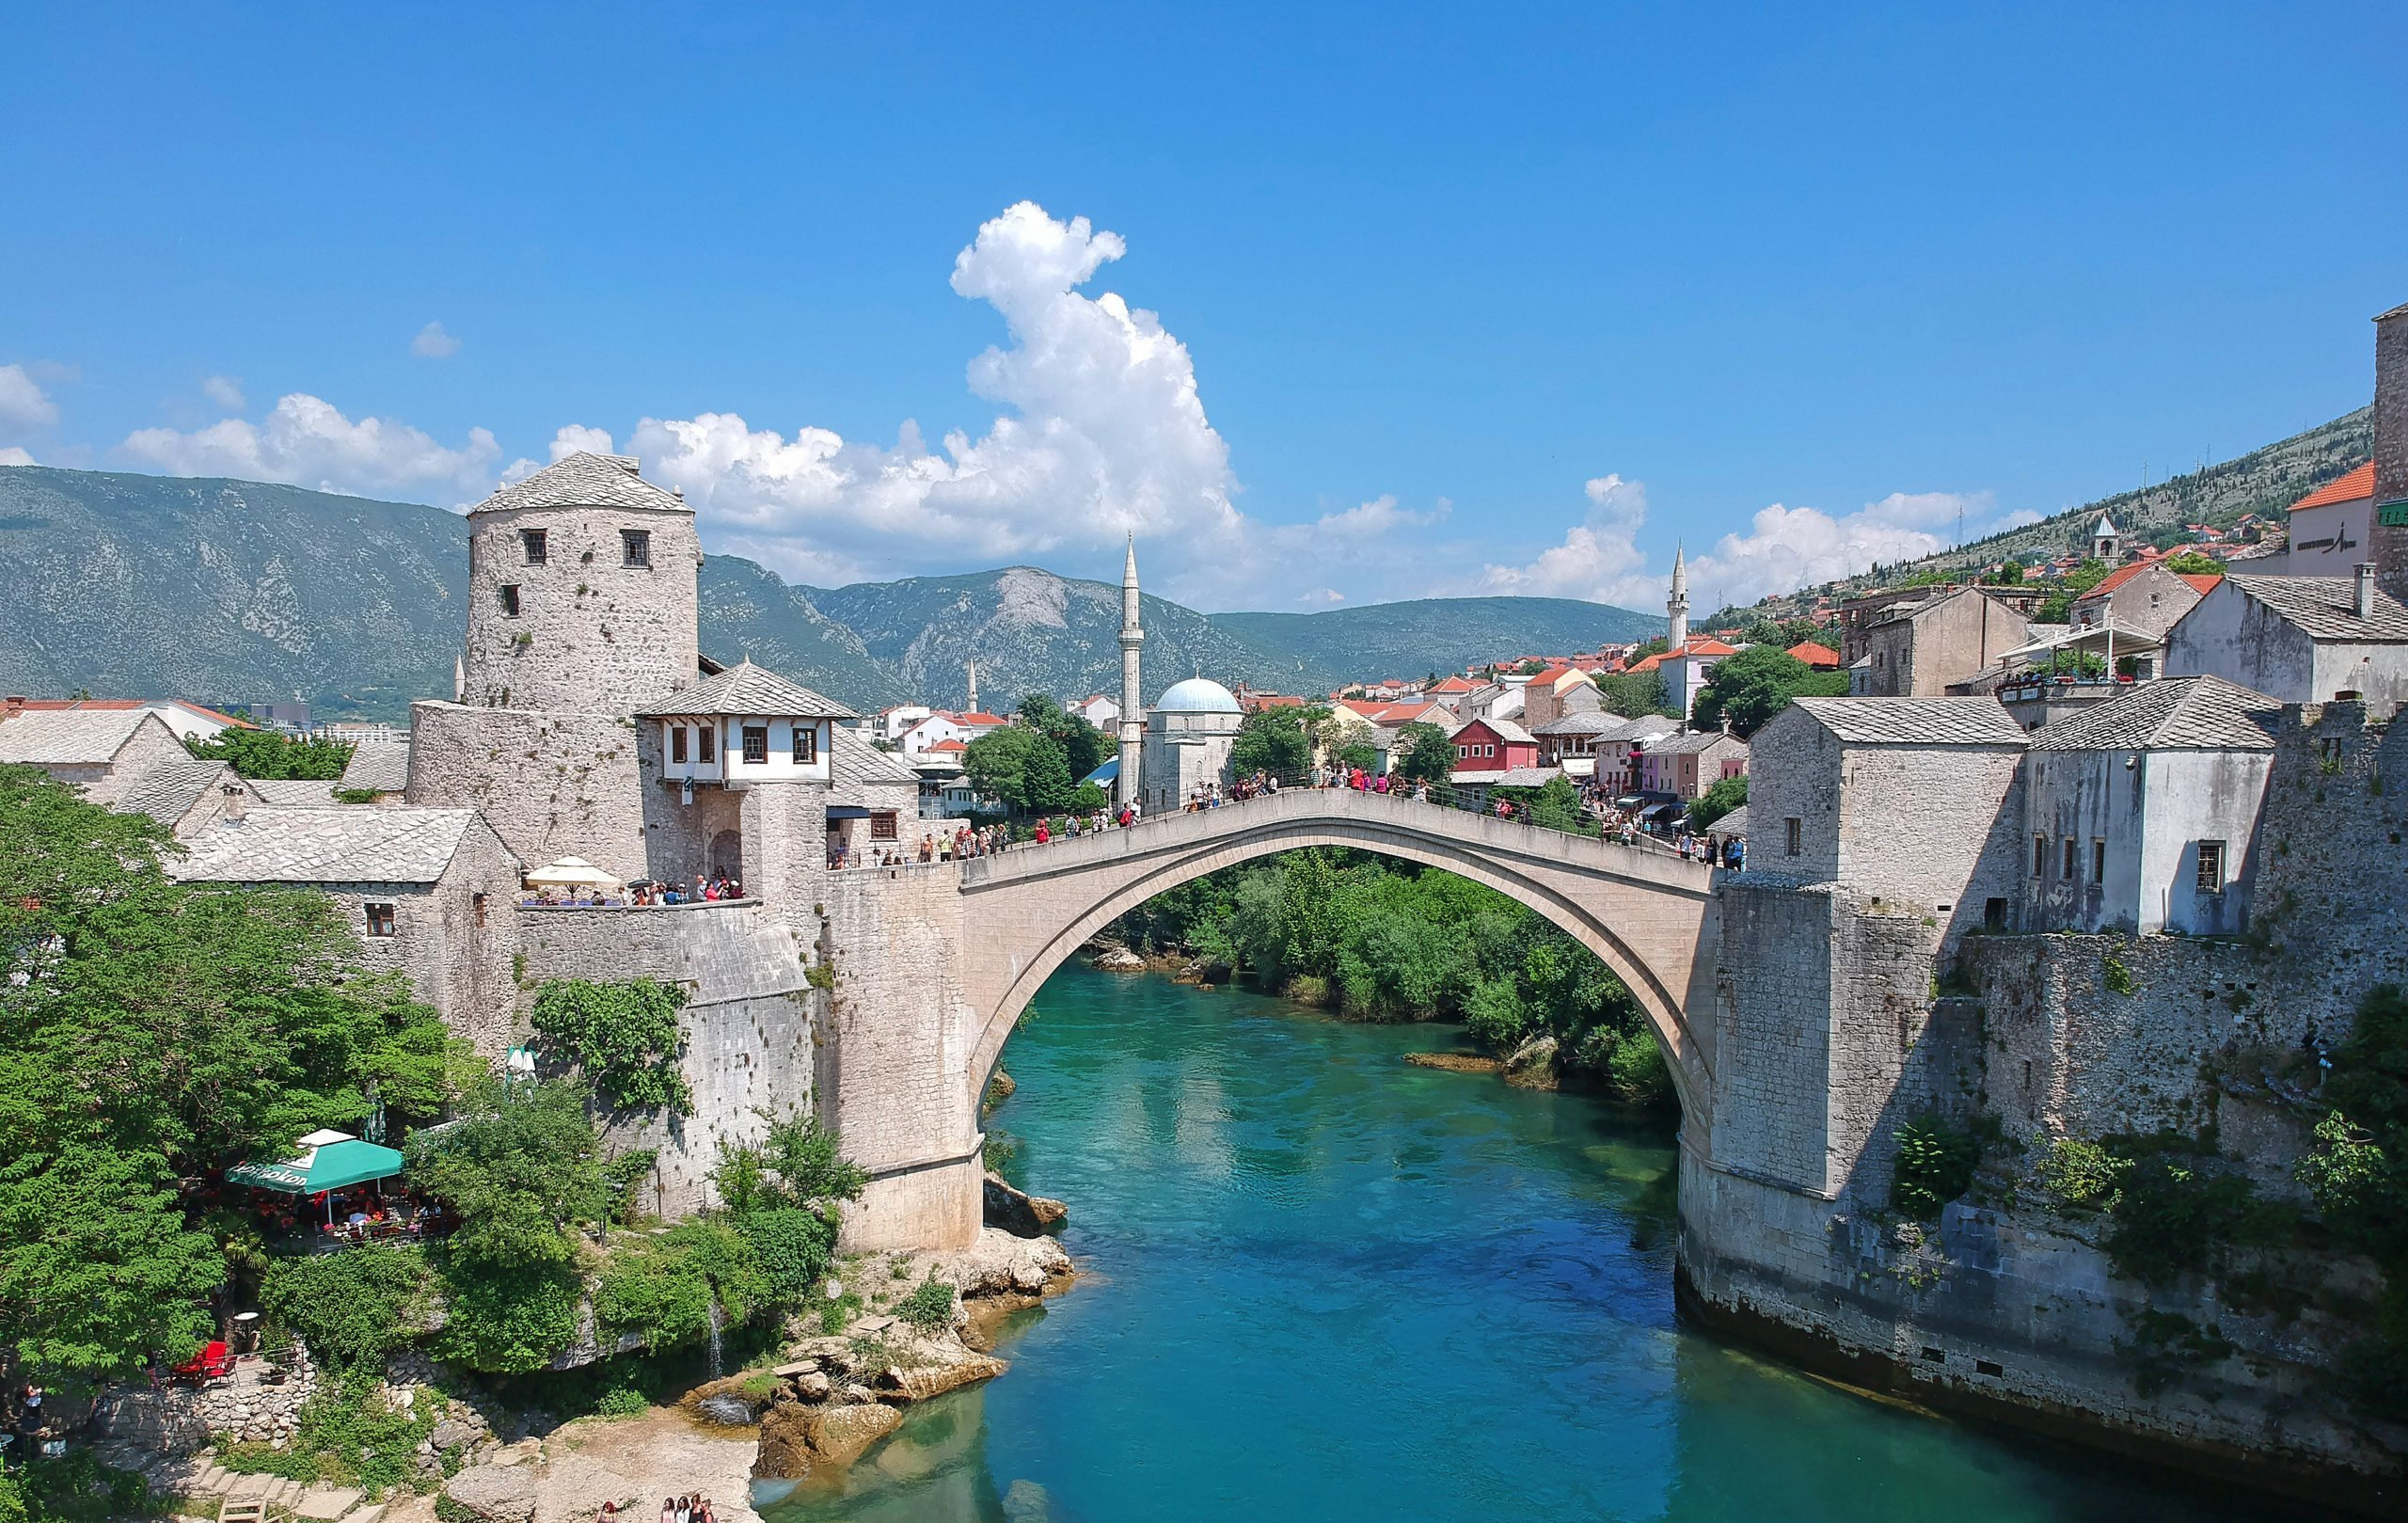 Visit One Of The Landmarks Of Bosnia And Herzegovina - The Old Bridge Over The Neretva River - On The 7 Day Highlights Of Croatia Package Tour